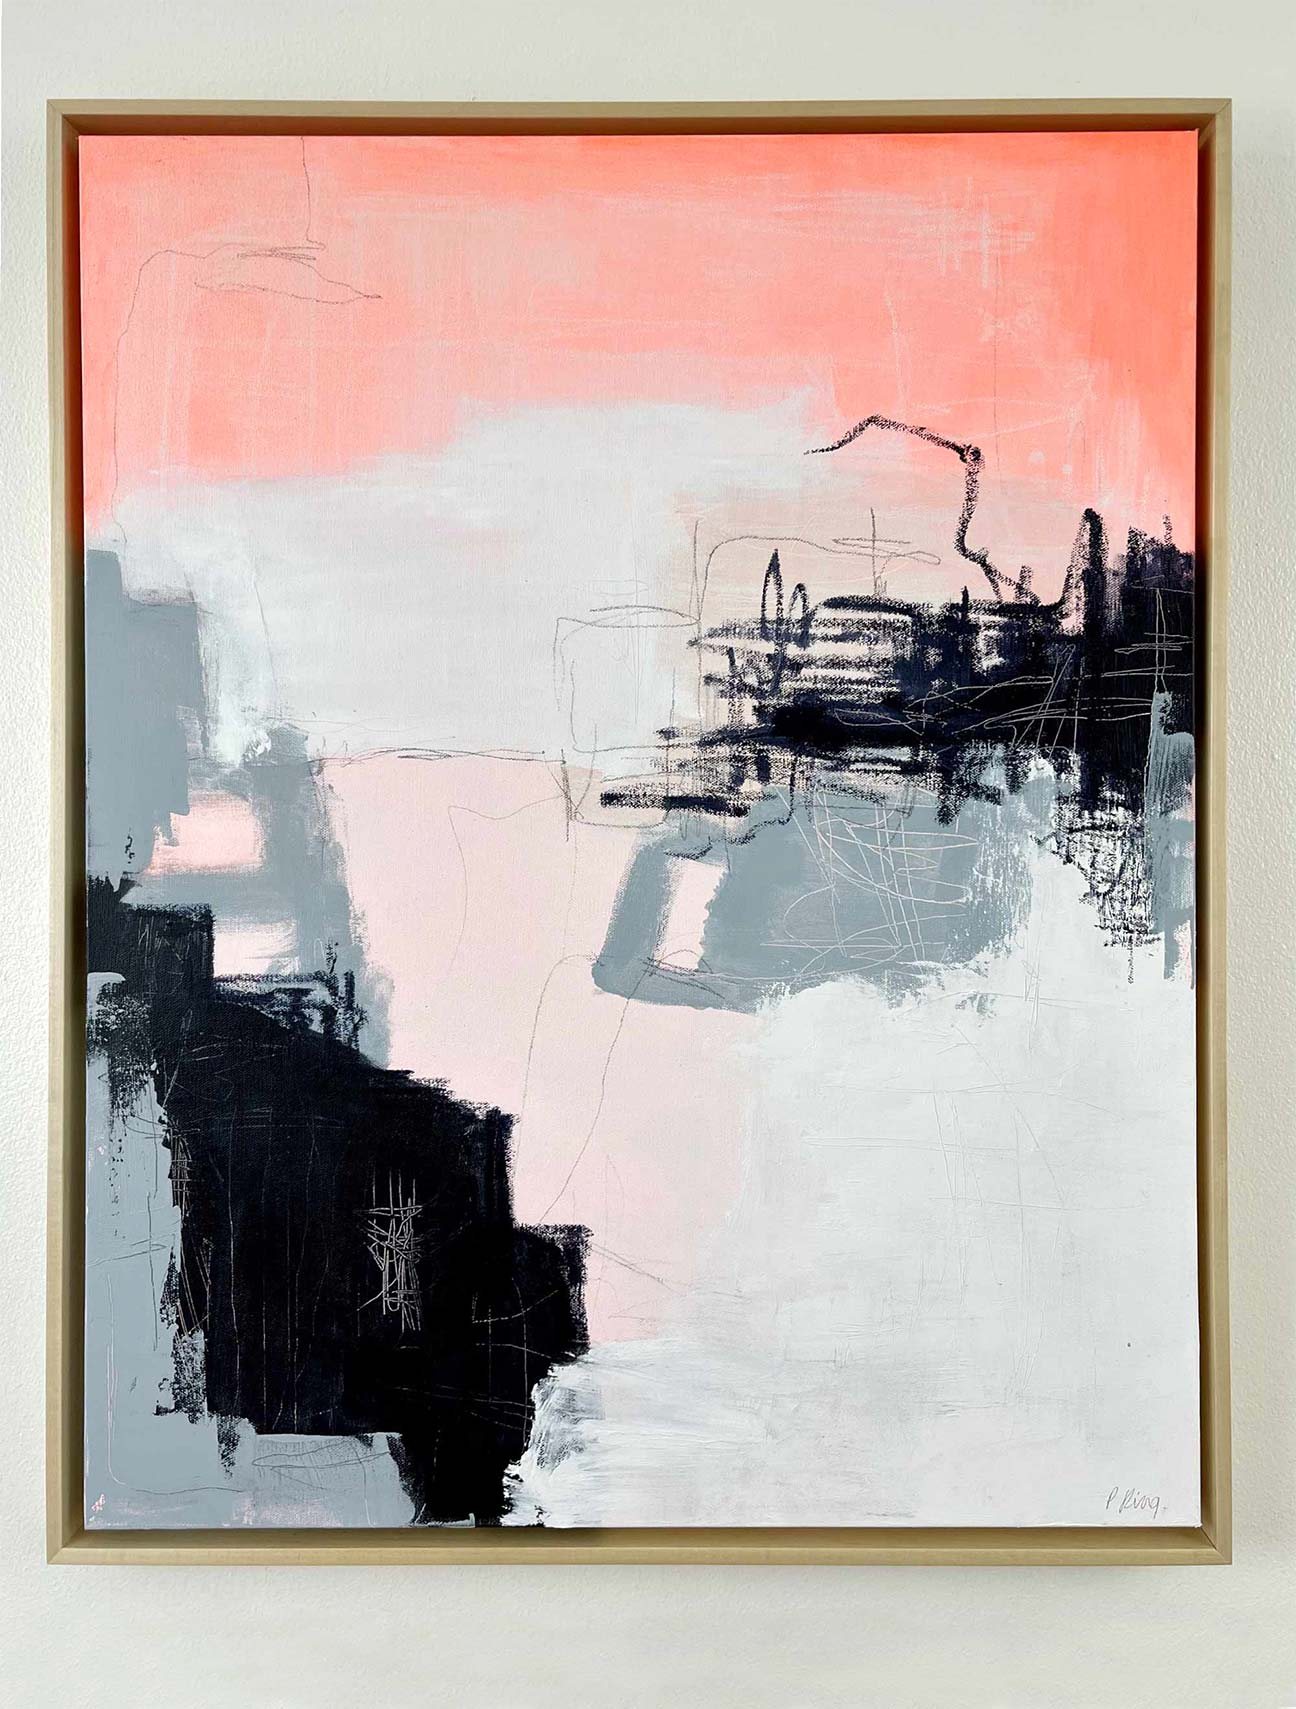 Rough Night Bright Morning - Framed on Wall- Original Abstract Painting By Artist Paige Ring